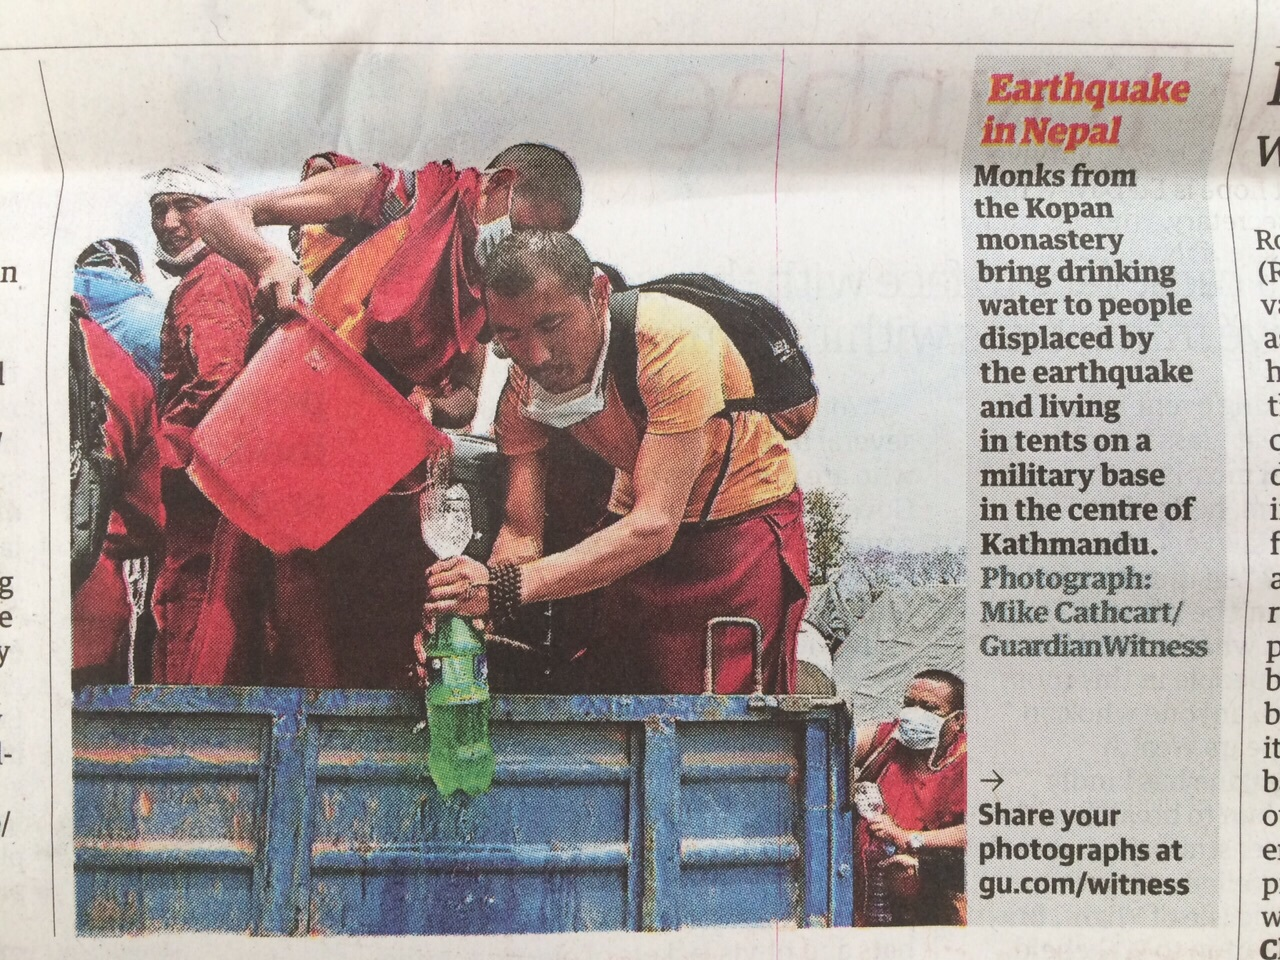 Kopan's relief efforts being acknowledged by the Guardian Witness.